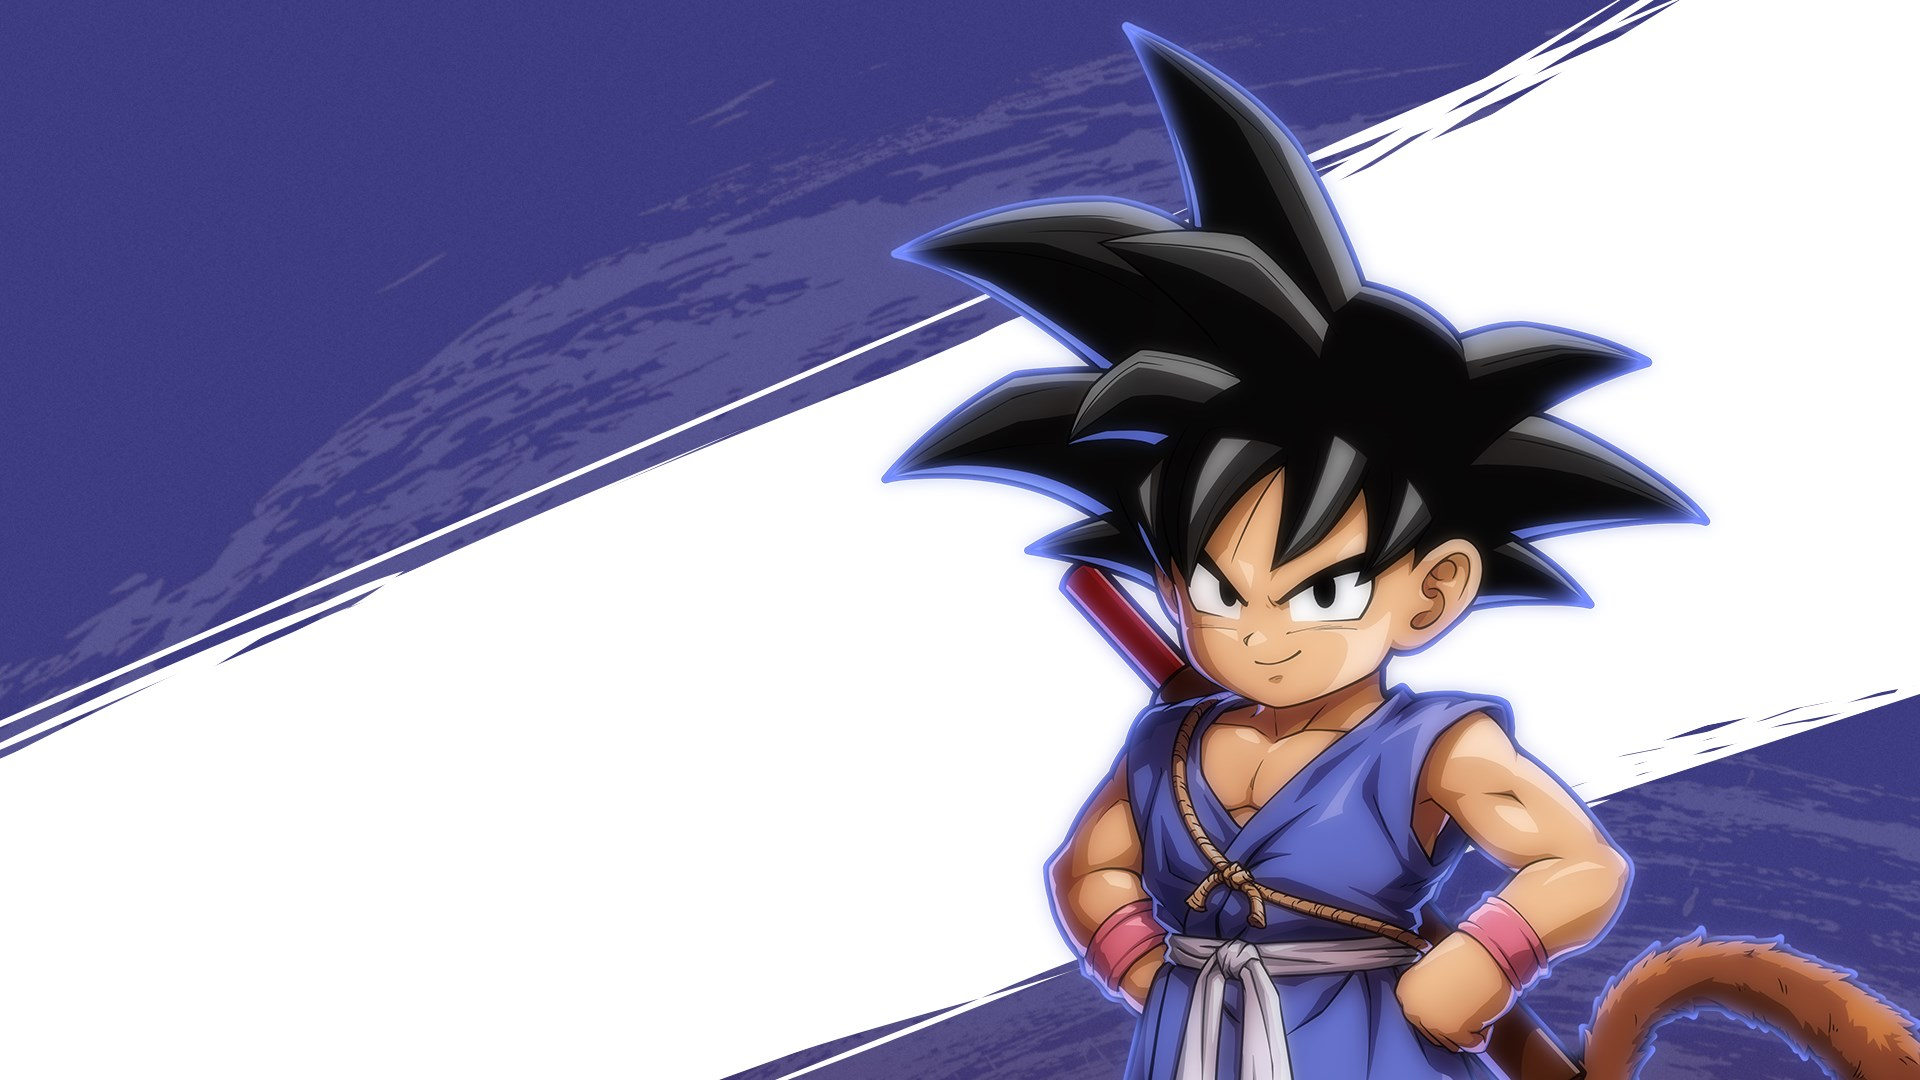 Buy dragon ball fighterz goku gt microsoft store en ca - Dragon ball gt goku wallpaper ...